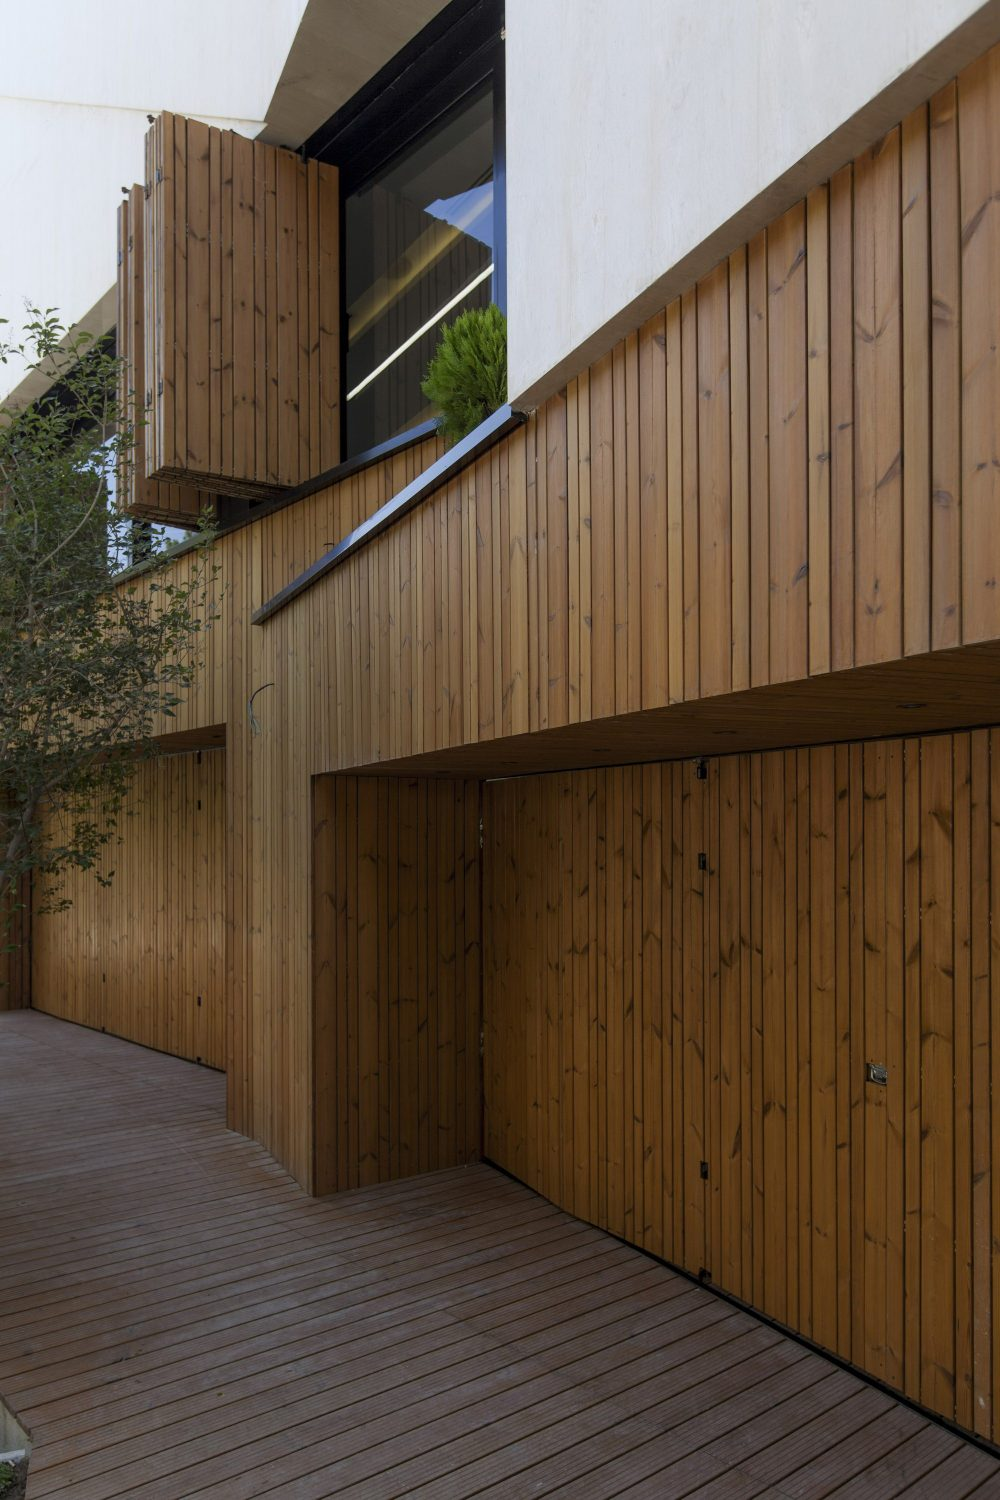 Kooshk House by Sarsayeh Architectural Office